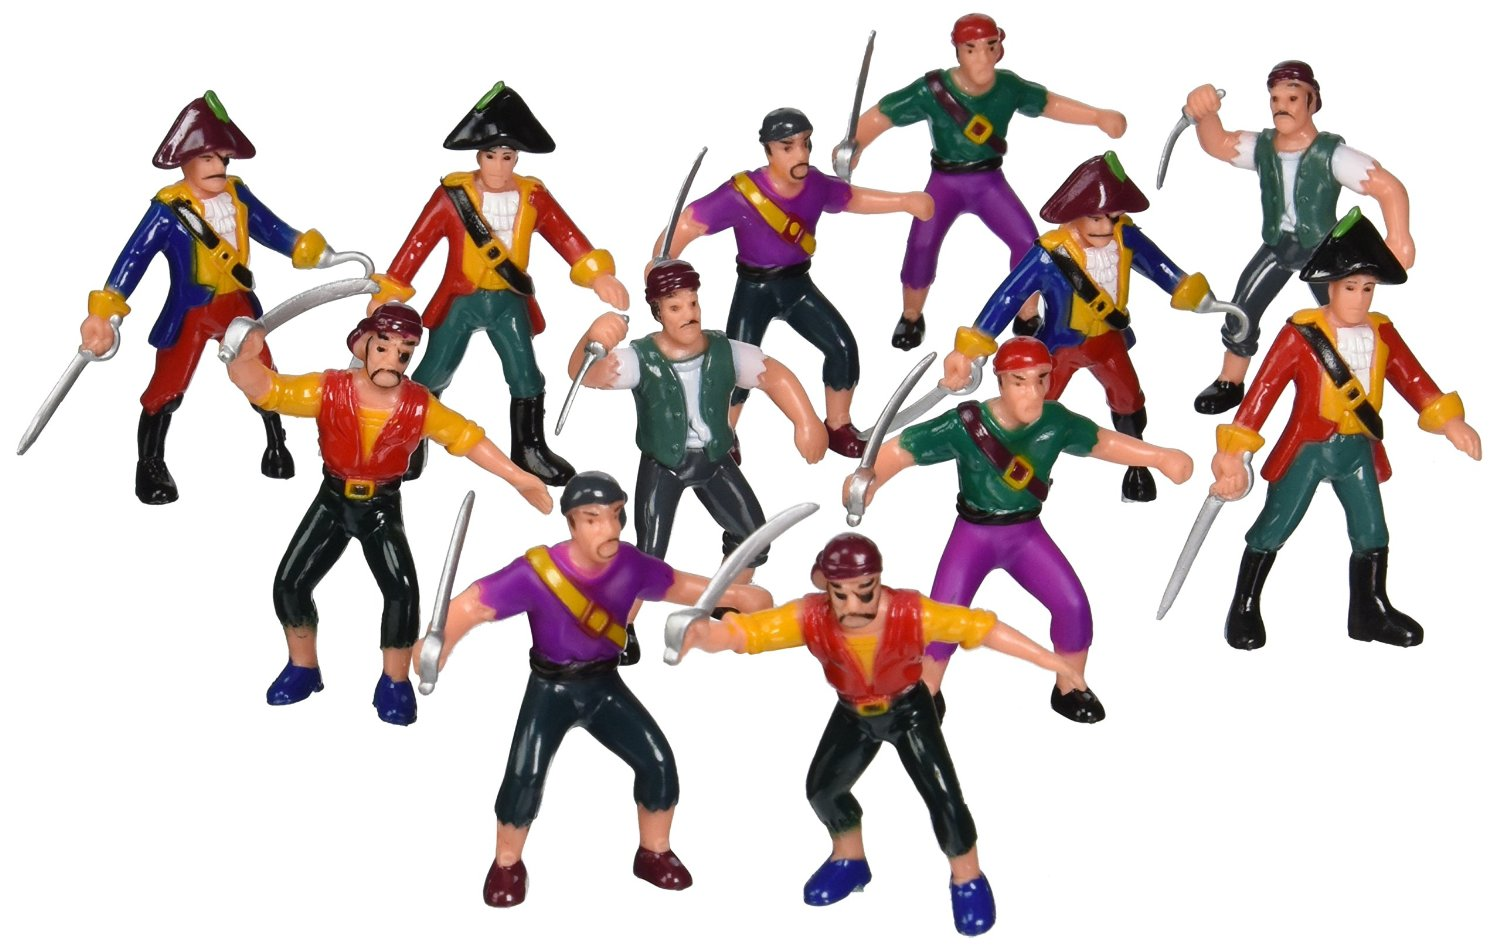 Rhode Island Novelty Plastic Pirate Action Figures (1 Dozen)